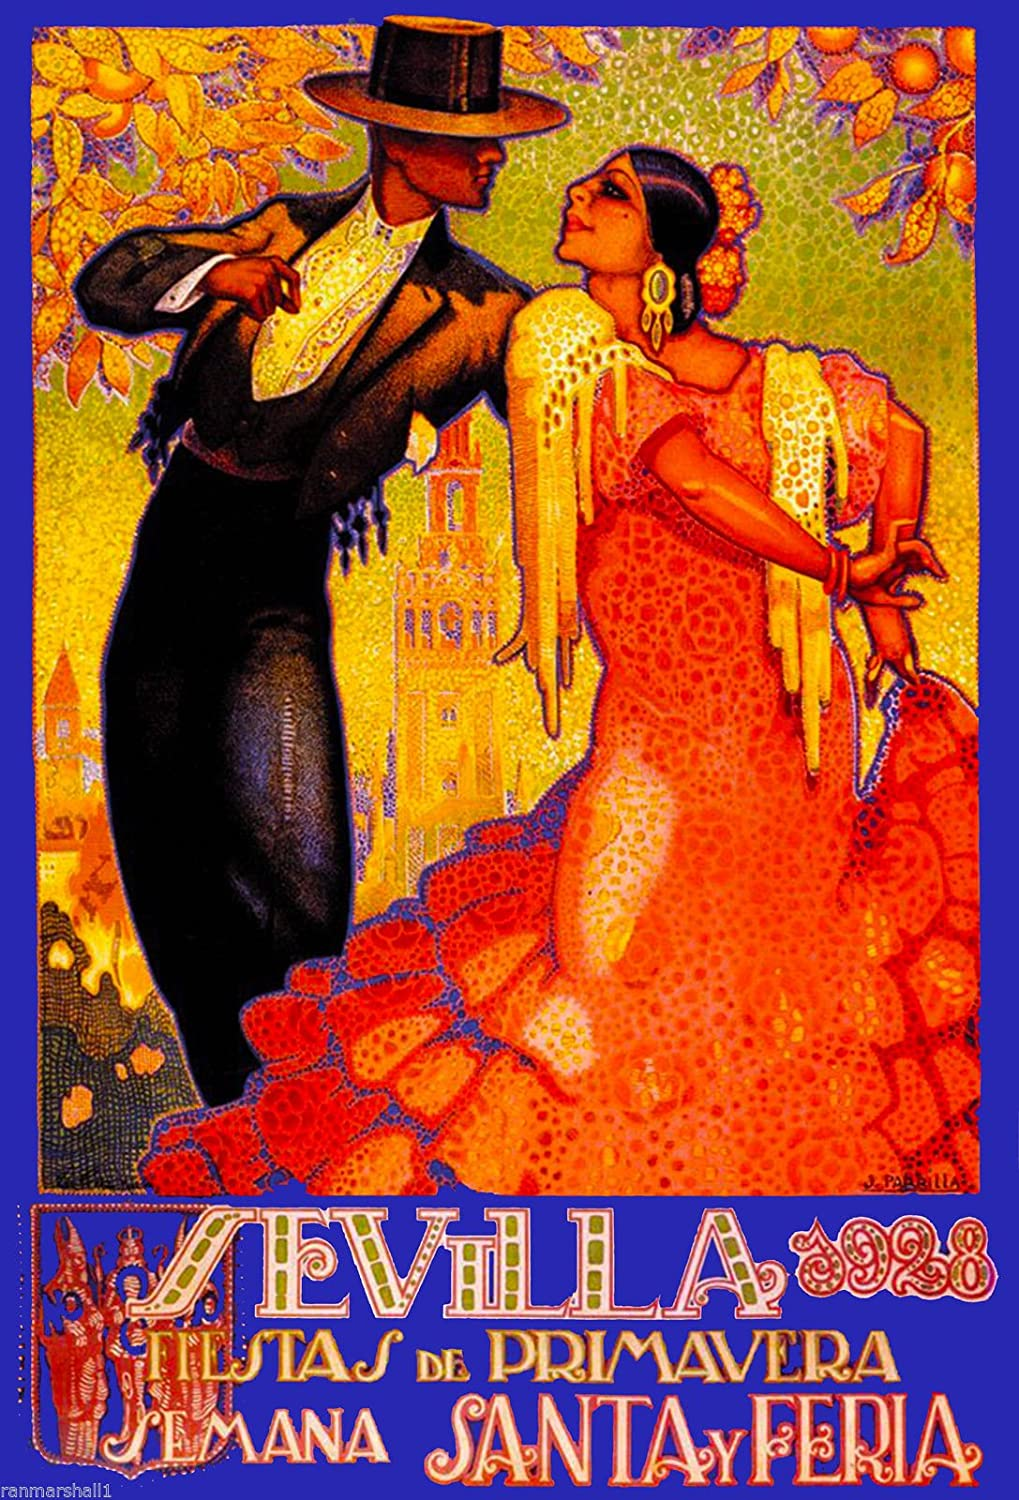 A SLICE IN TIME 1928 Feria de Sevilla Fair of Seville Spain Vintage Travel Advertisement Art Collectible Wall Decor Poster Print. Measures 10 x 13.5 inches